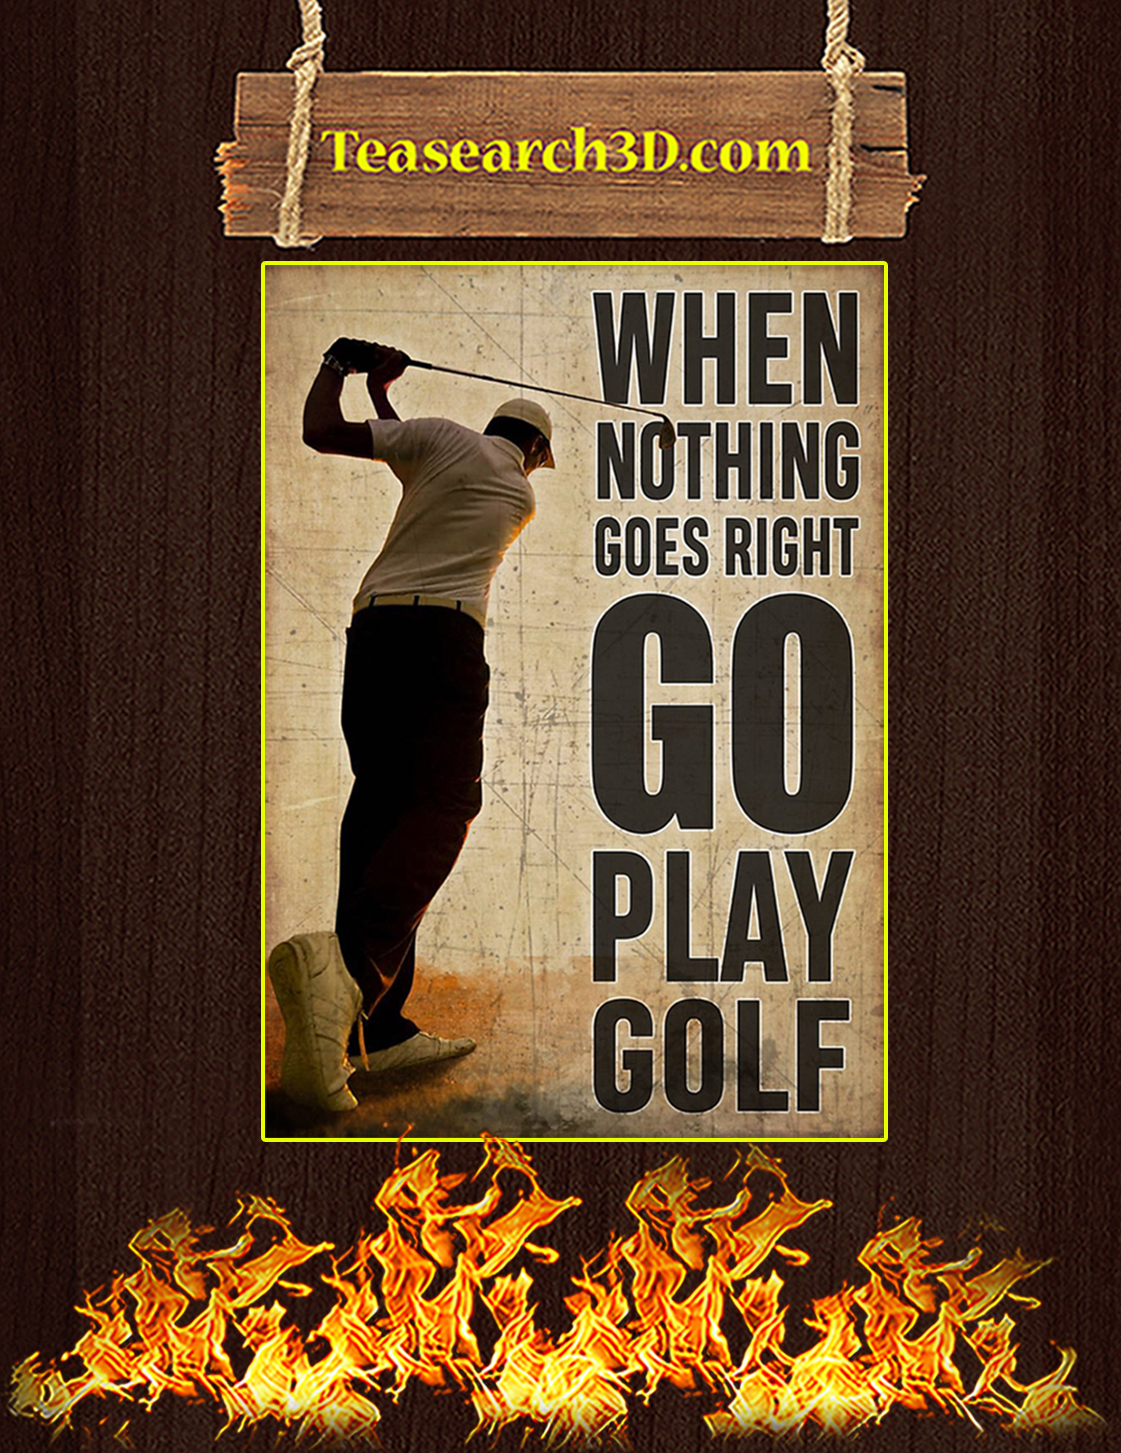 When nothing goes right go play golf poster A3